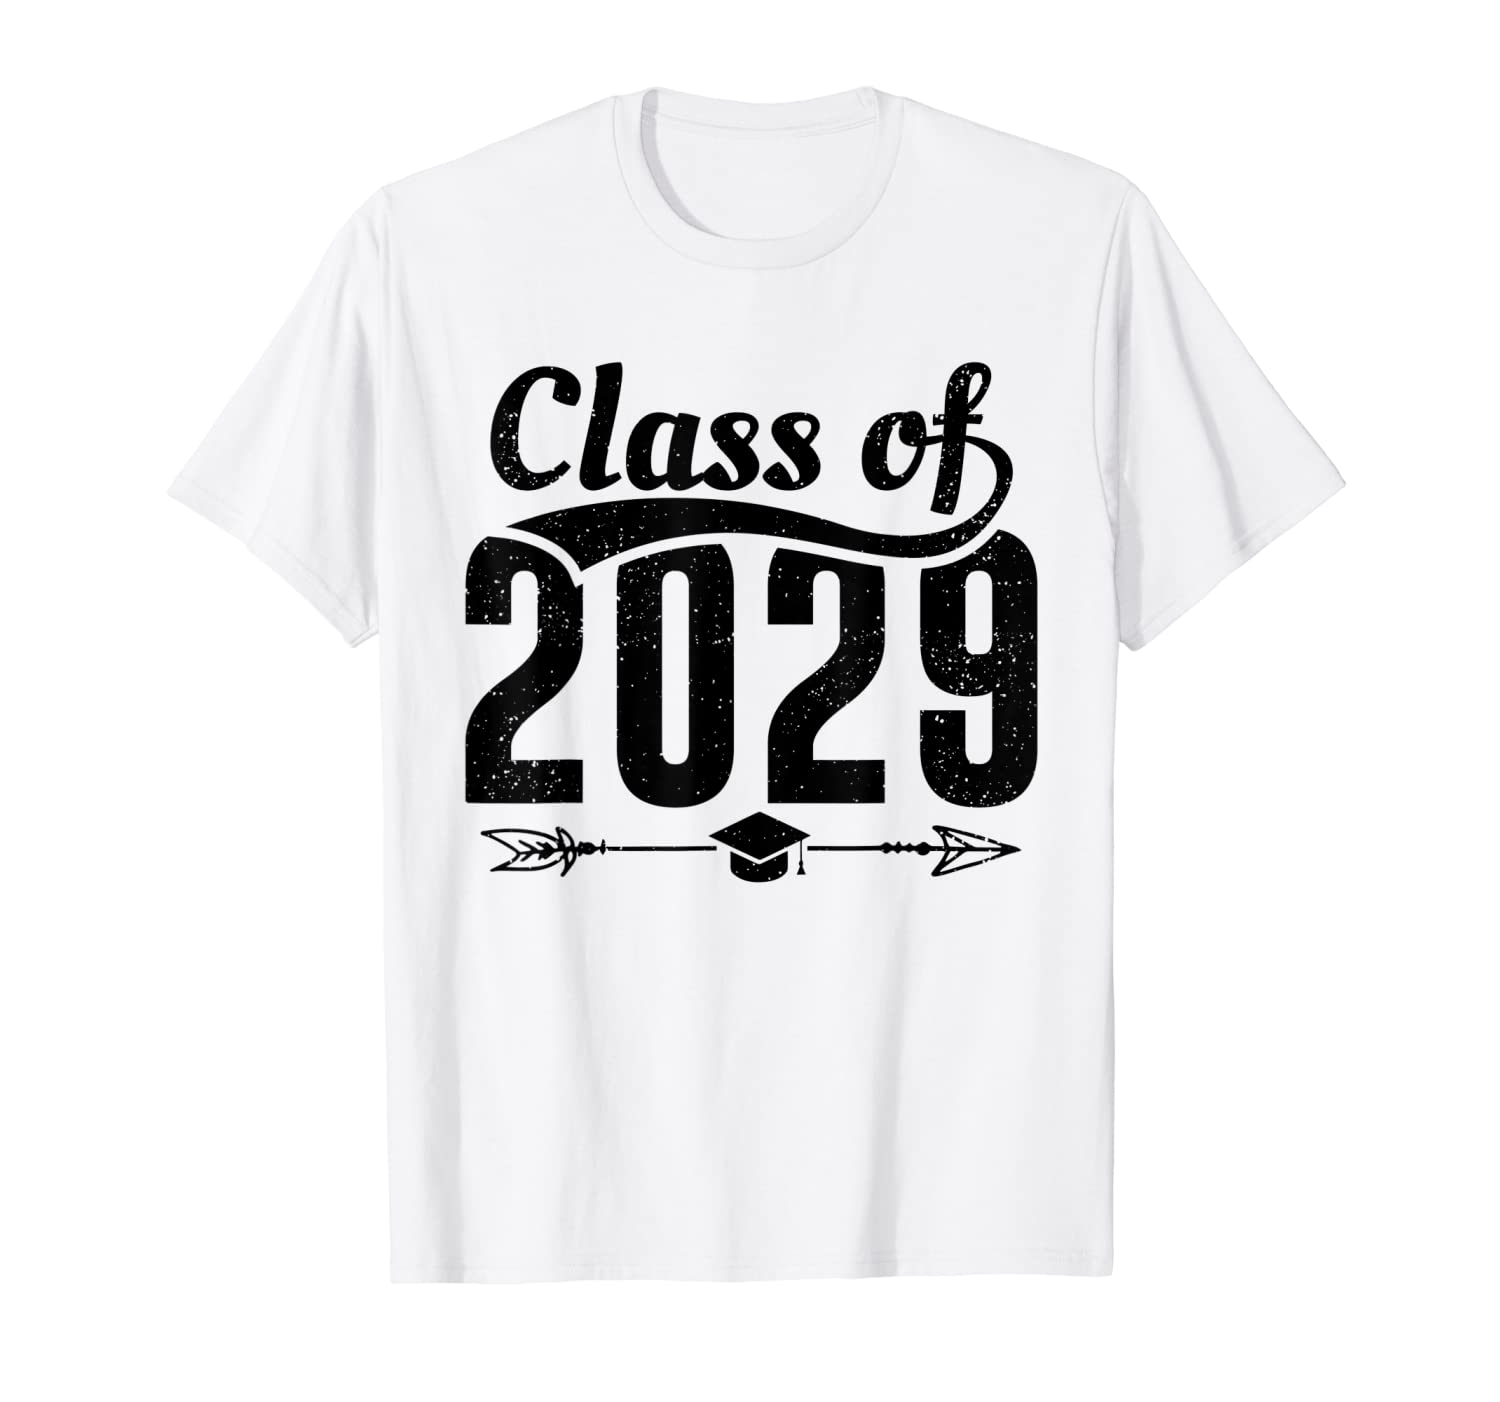 Class of 2029 Shirt Grow With Me First Day School Graduation